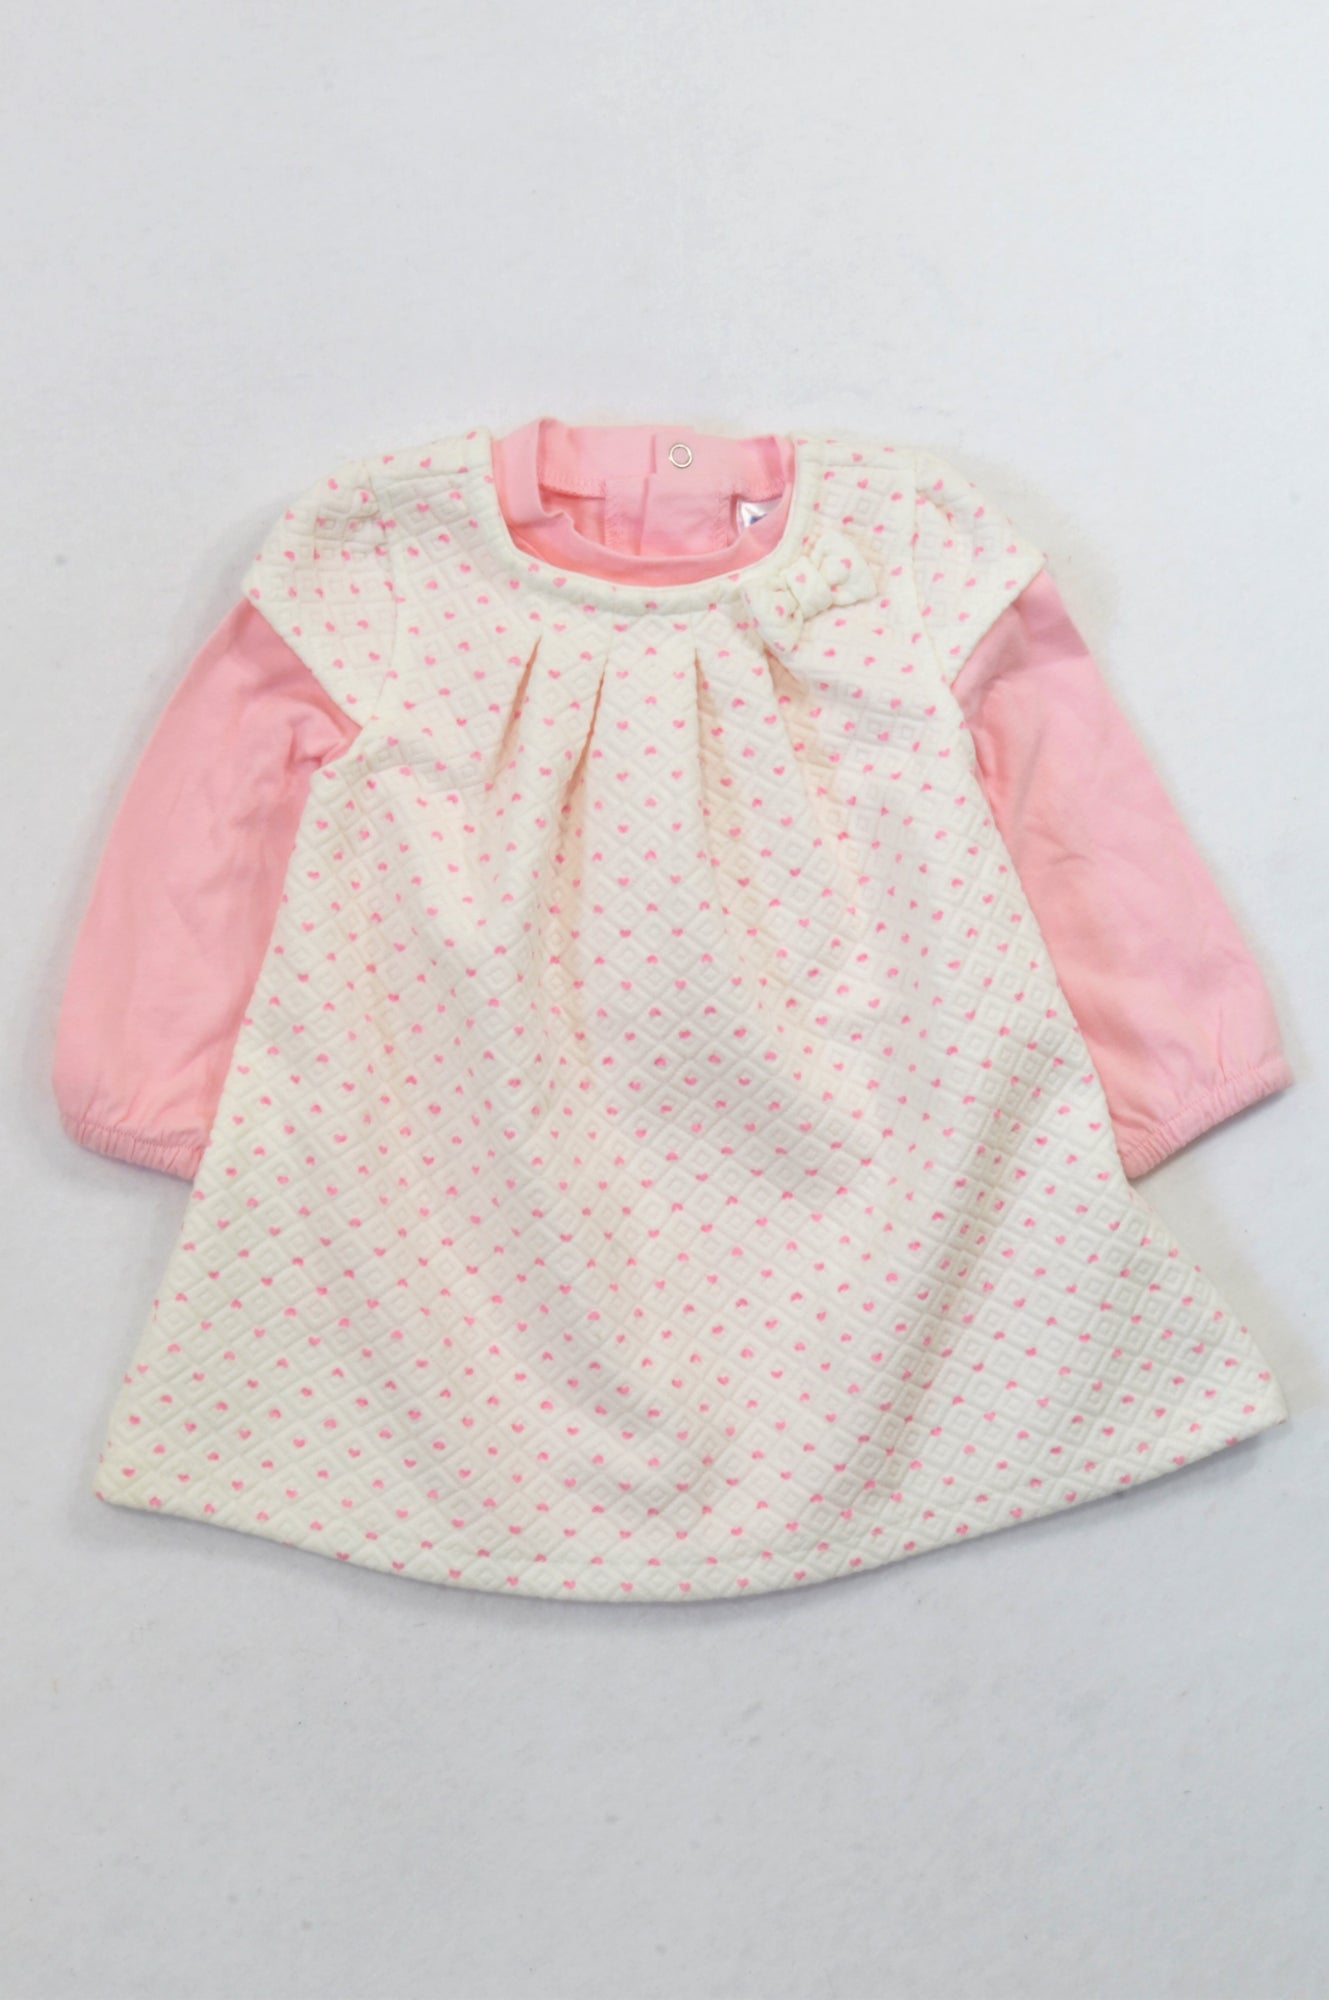 Ackermans Pink & White Heart Quilted Dress Outfit Girls 6-12 months